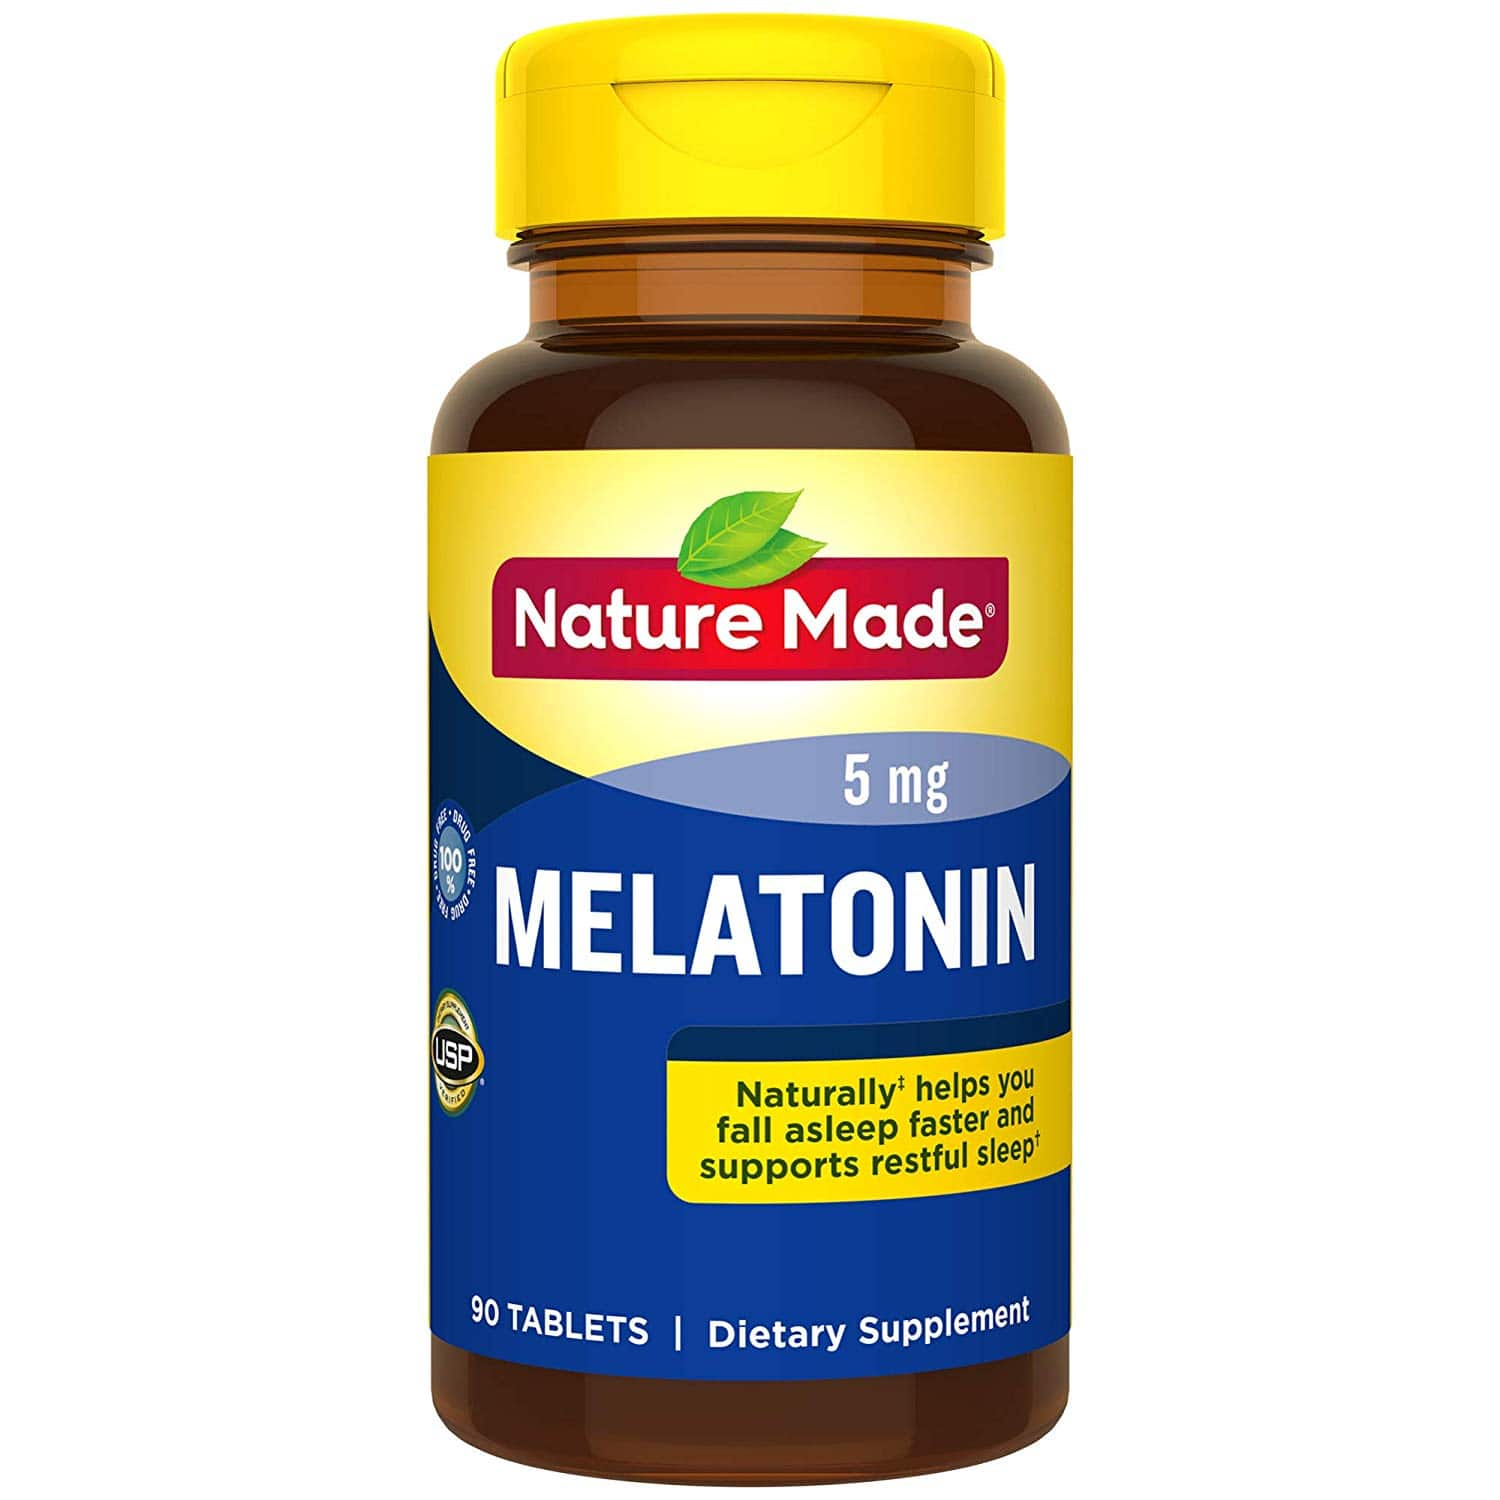 (YMMV) Nature Made Melatonin: 60-Count 3mg + 200mg L-theanine $2.75  90-Count 5mg $2.55 AC w/ S&S